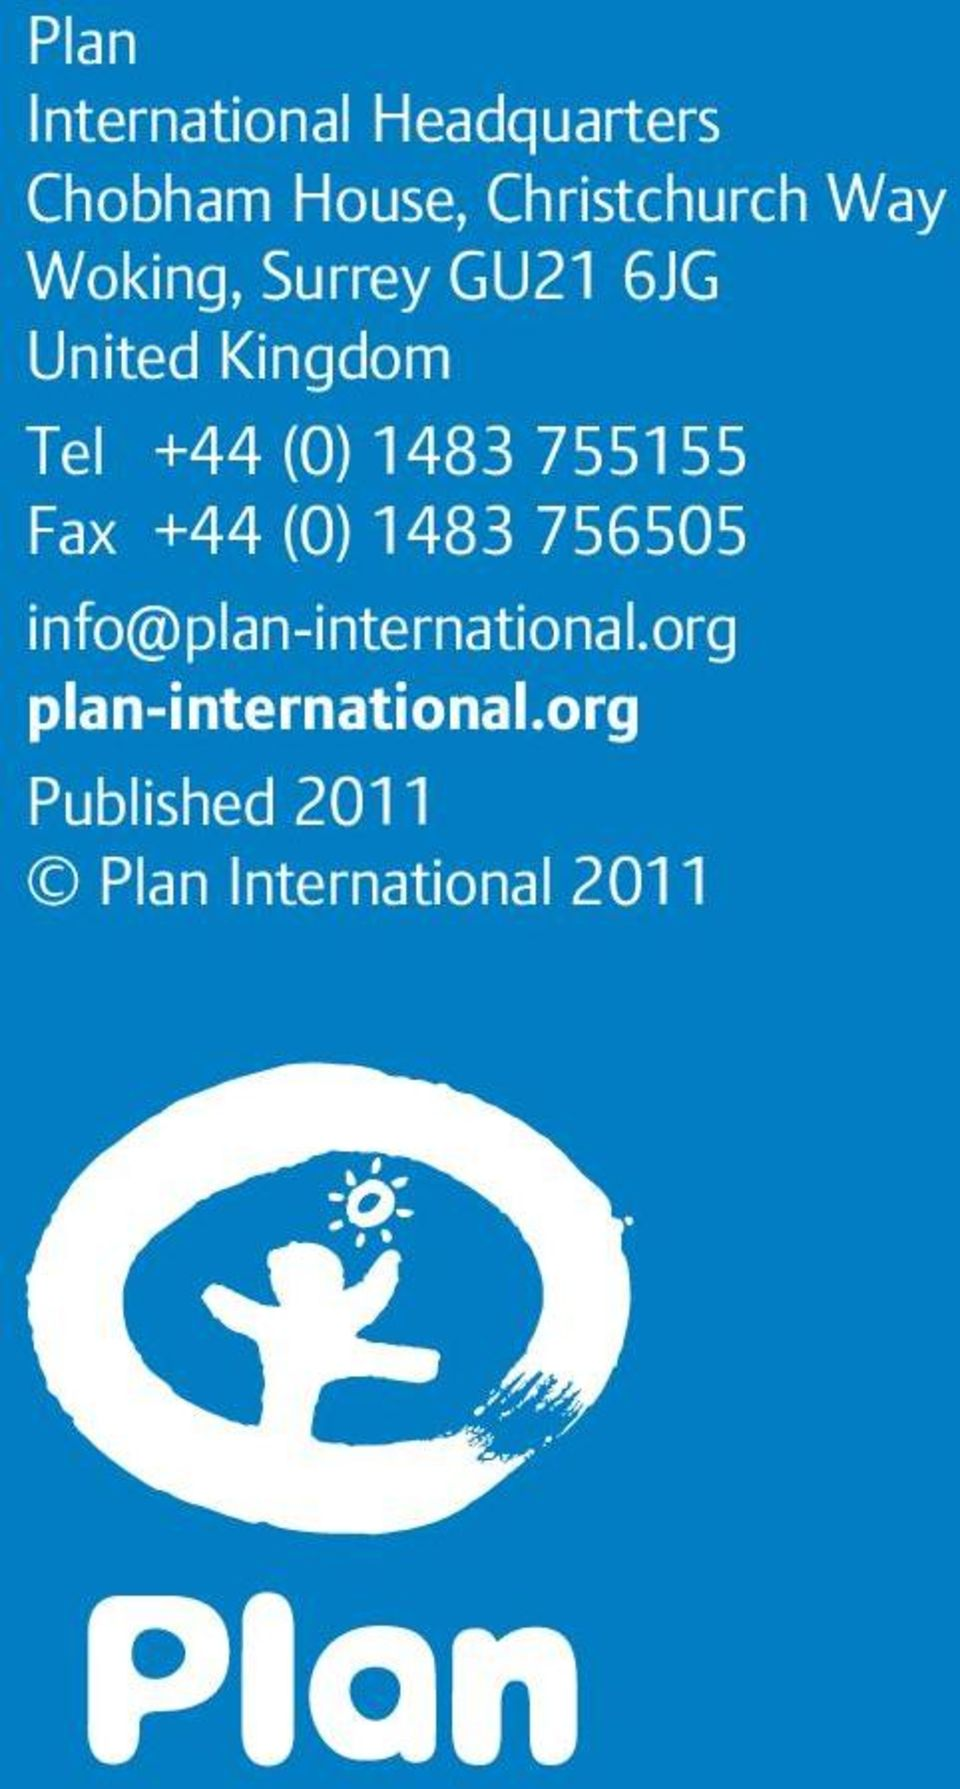 755155 Fax +44 (0) 1483 756505 info@plan-international.